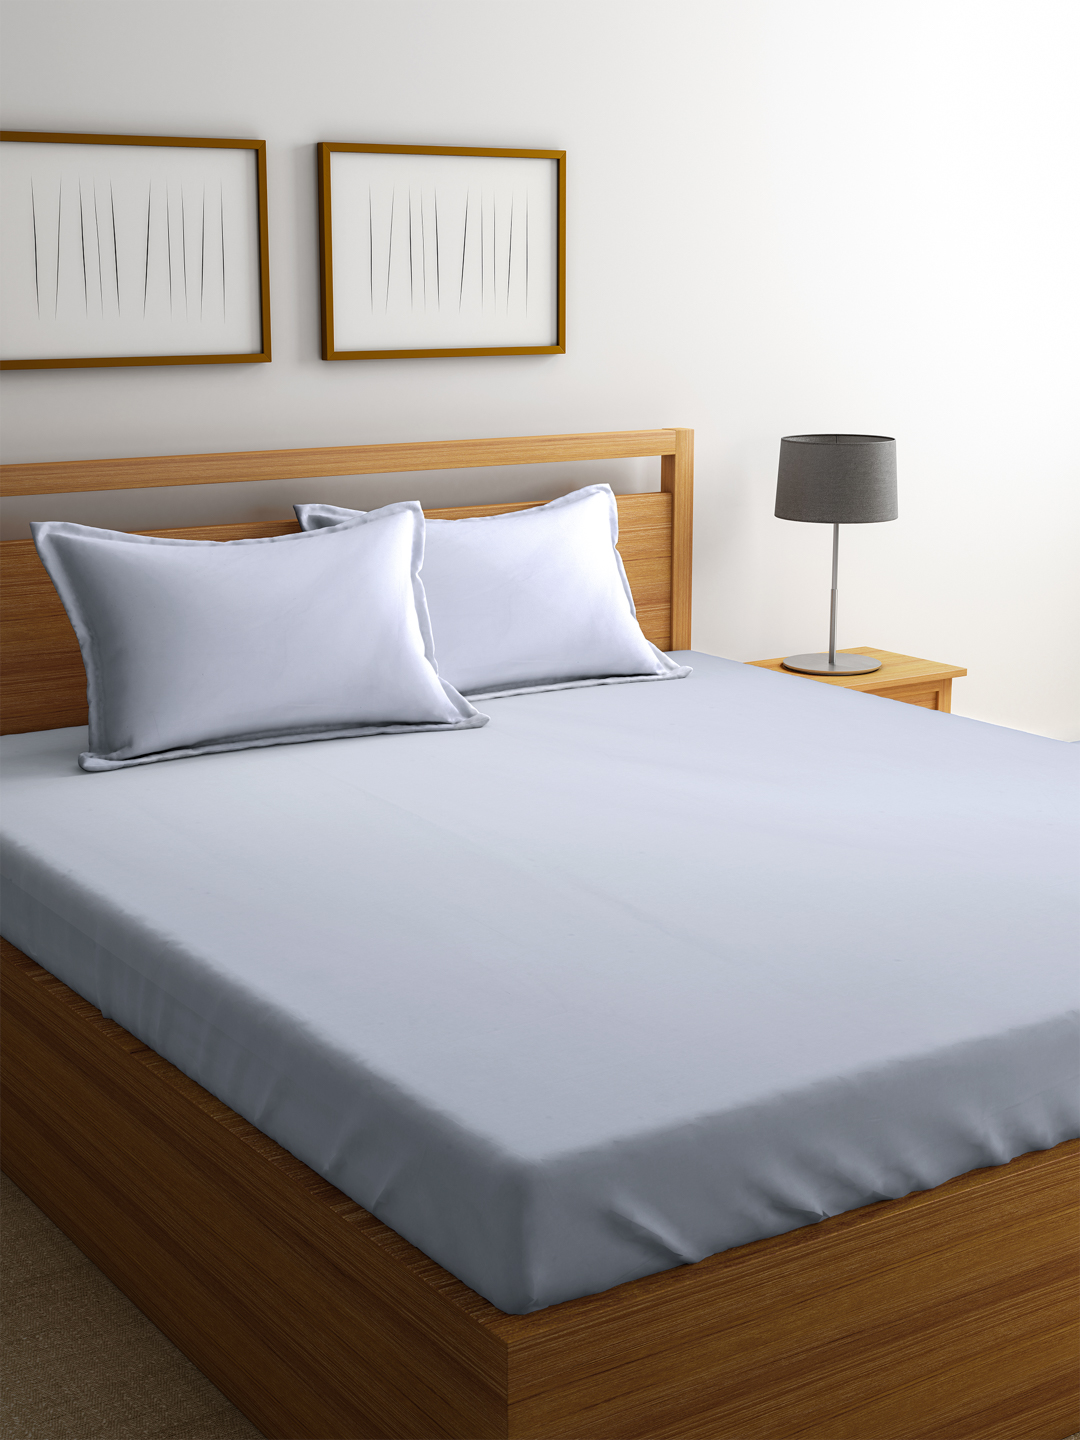 Portico Percale Cotton Double Bed Sheets in White Colour by Portico